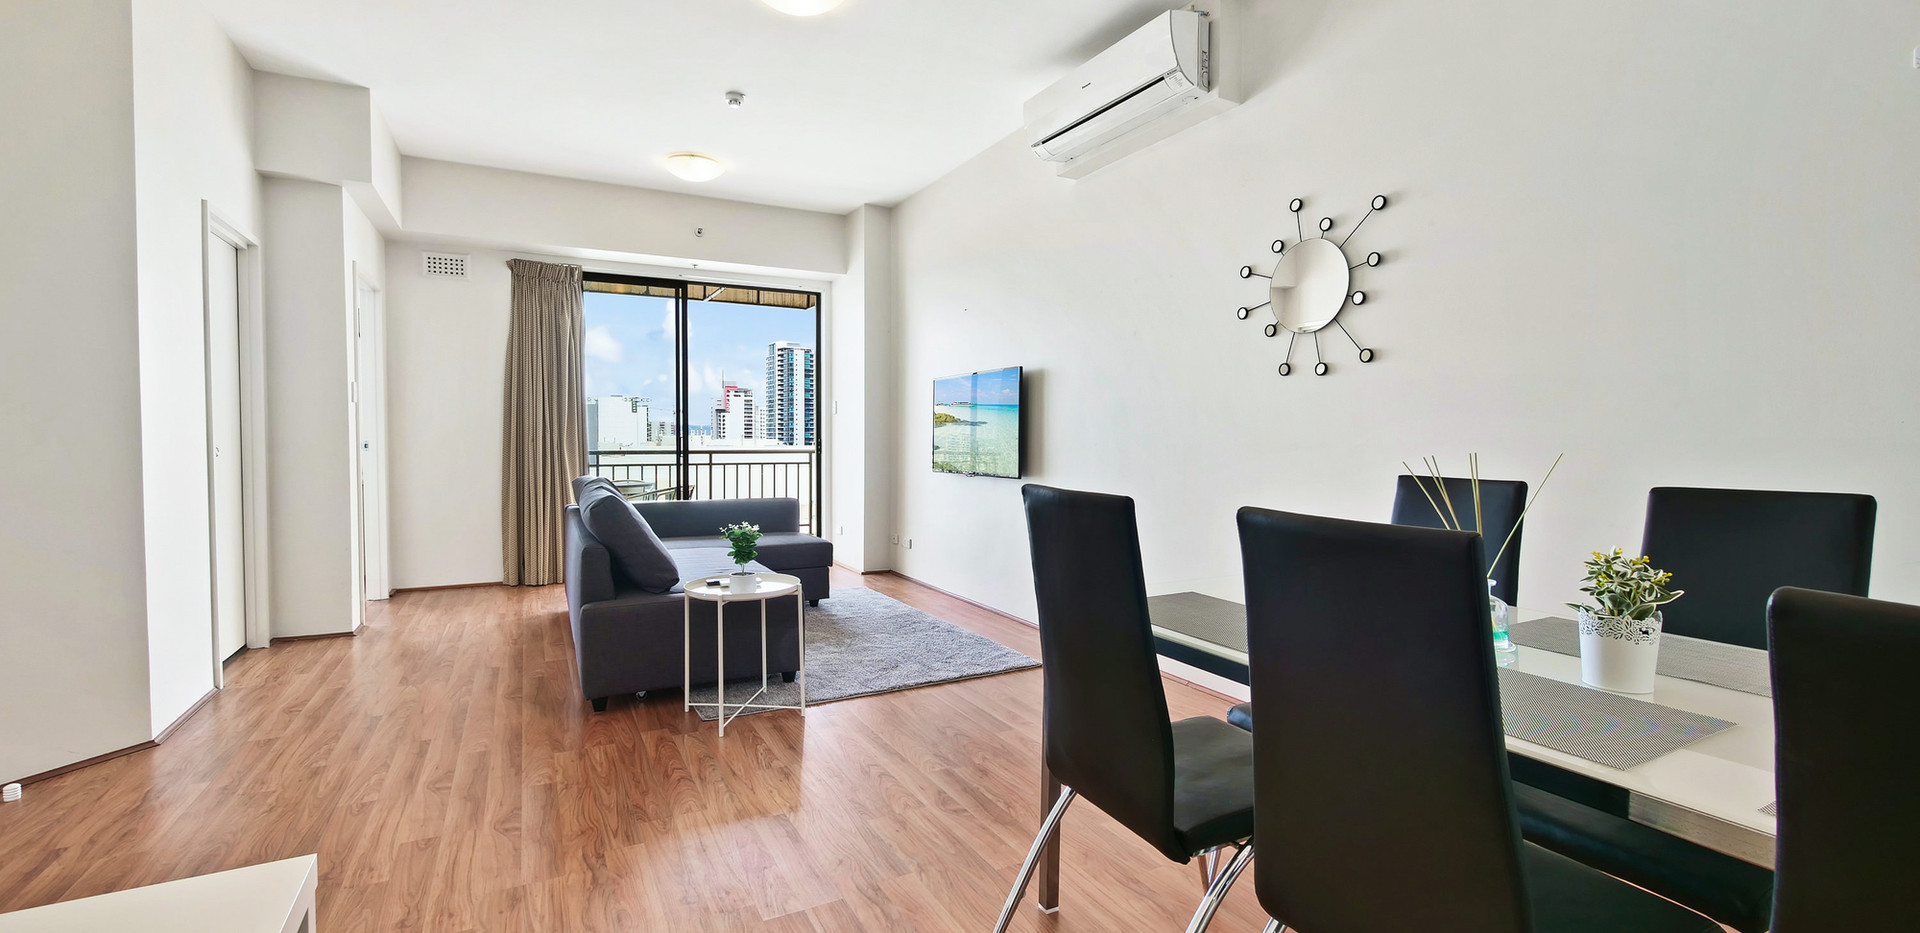 3. Dinging Lounge - Two Bedroom Penthous